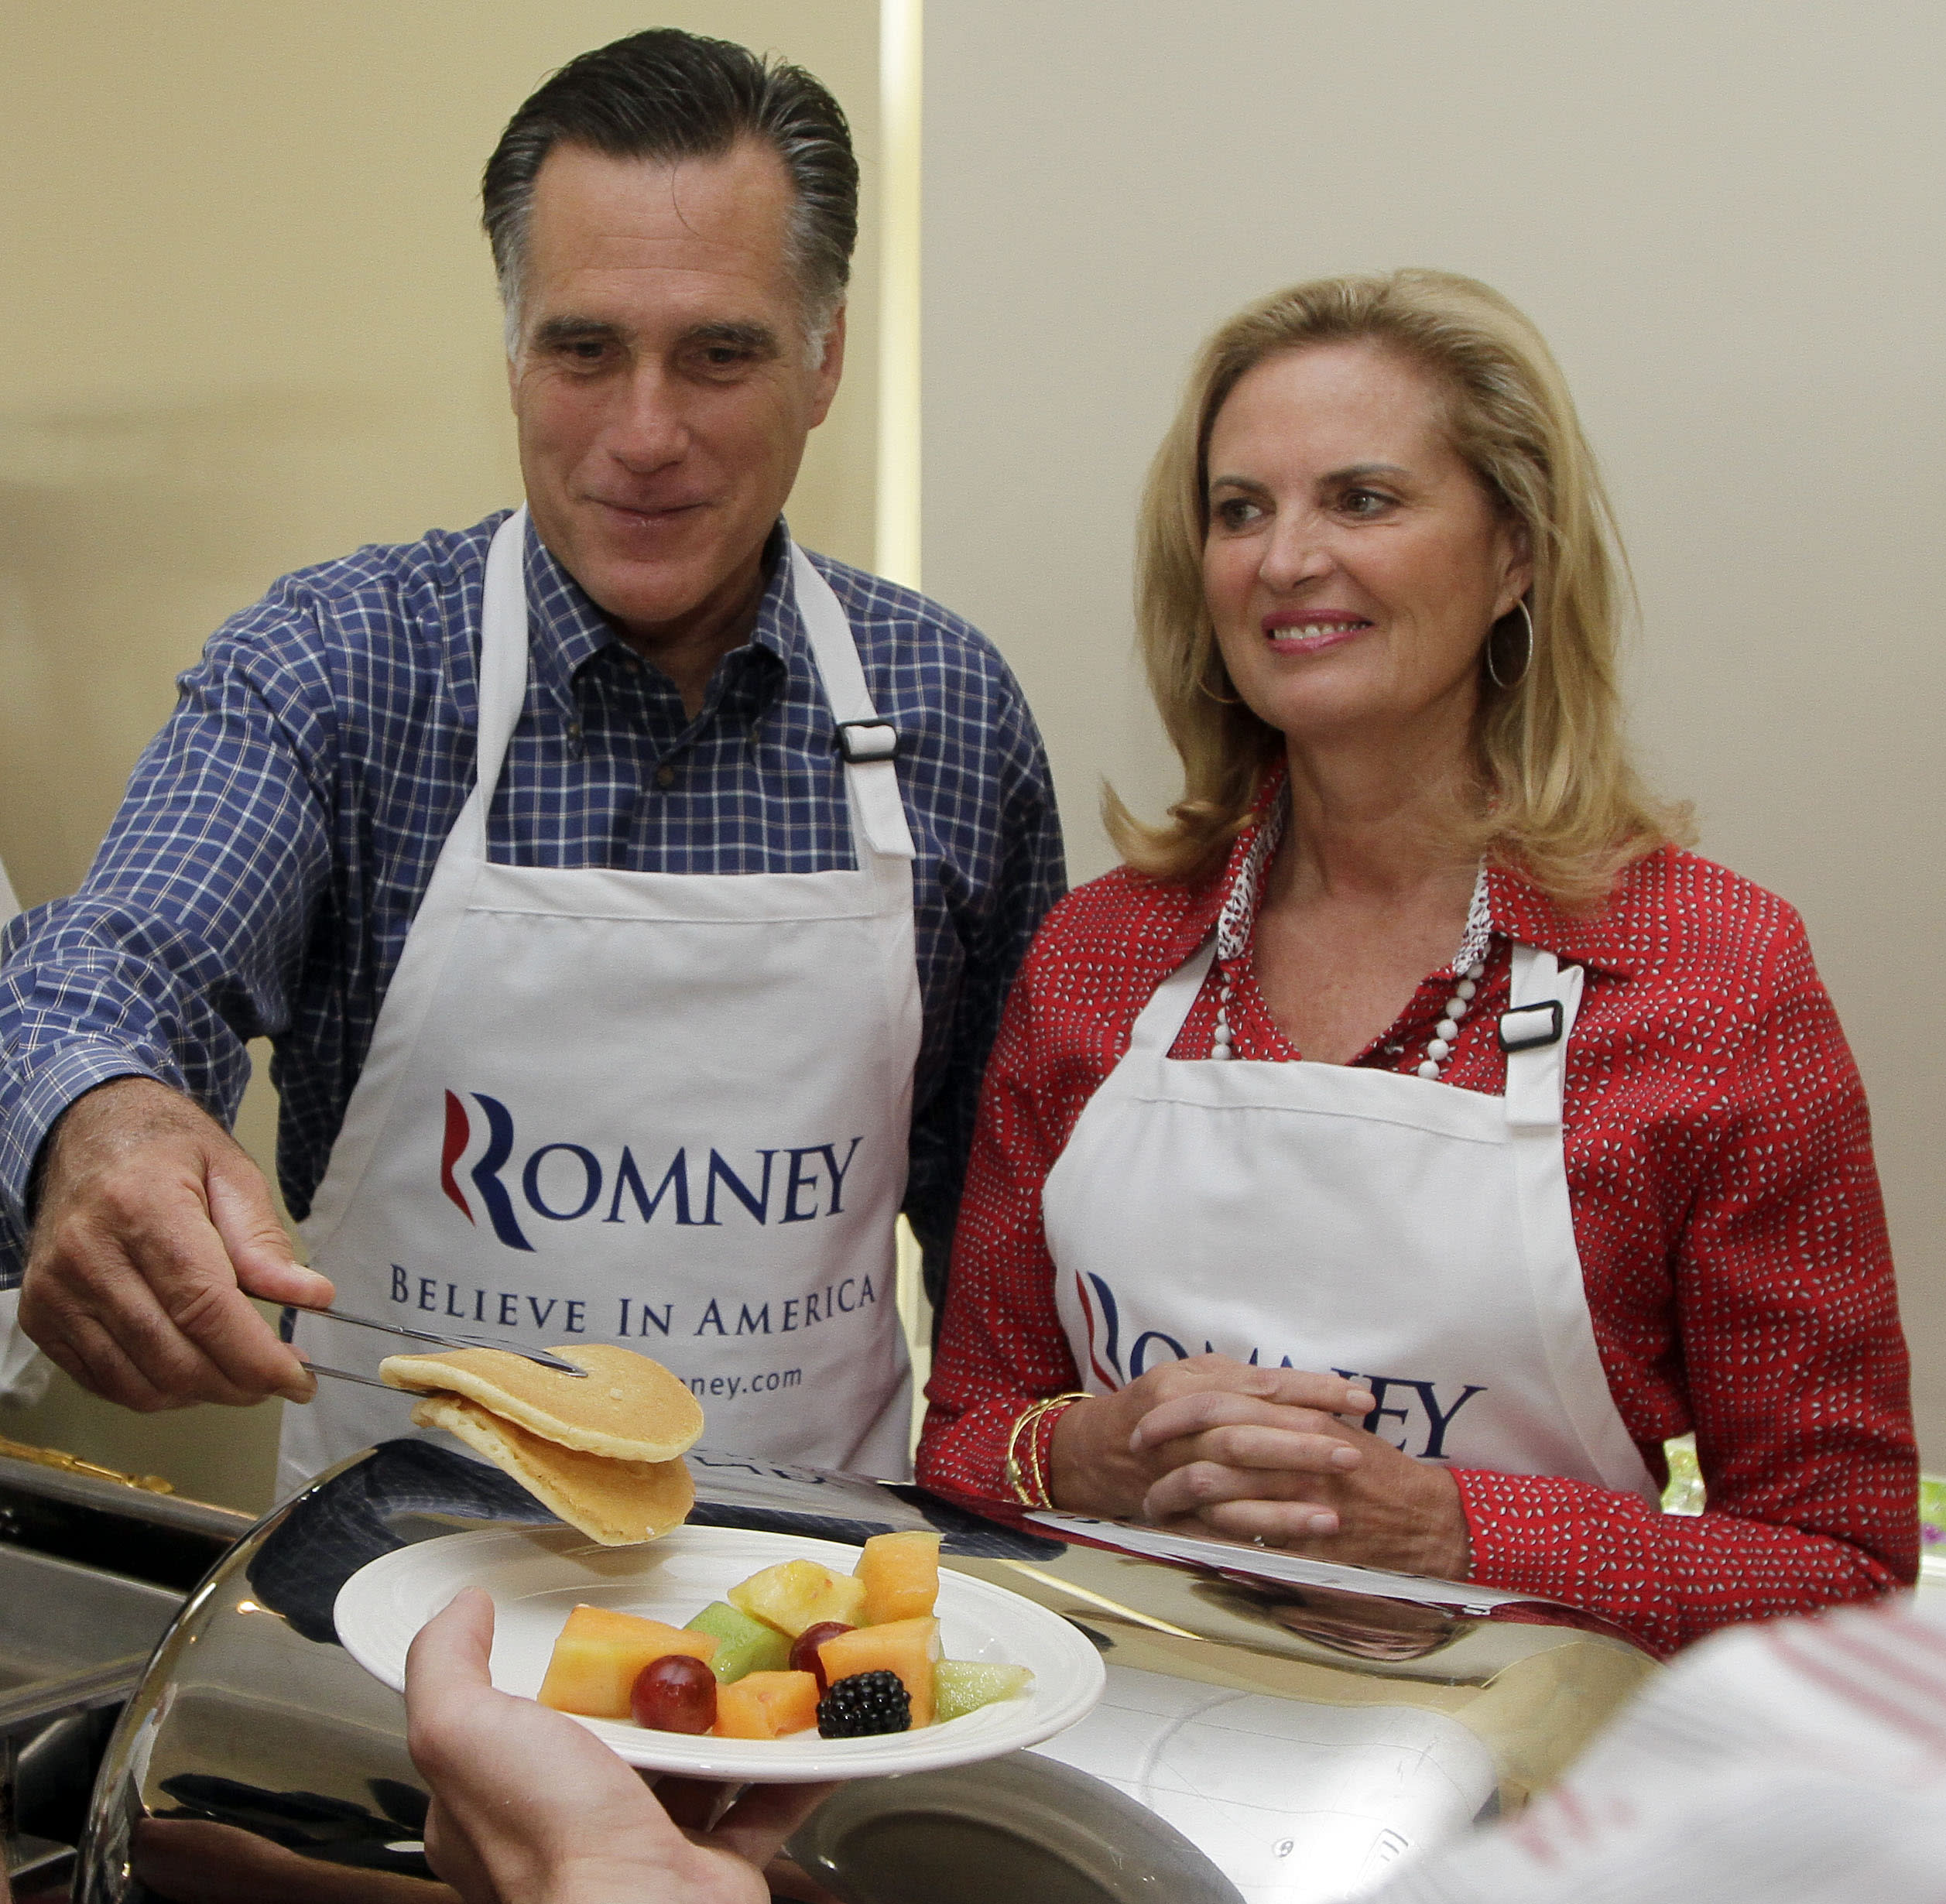 White apron nh